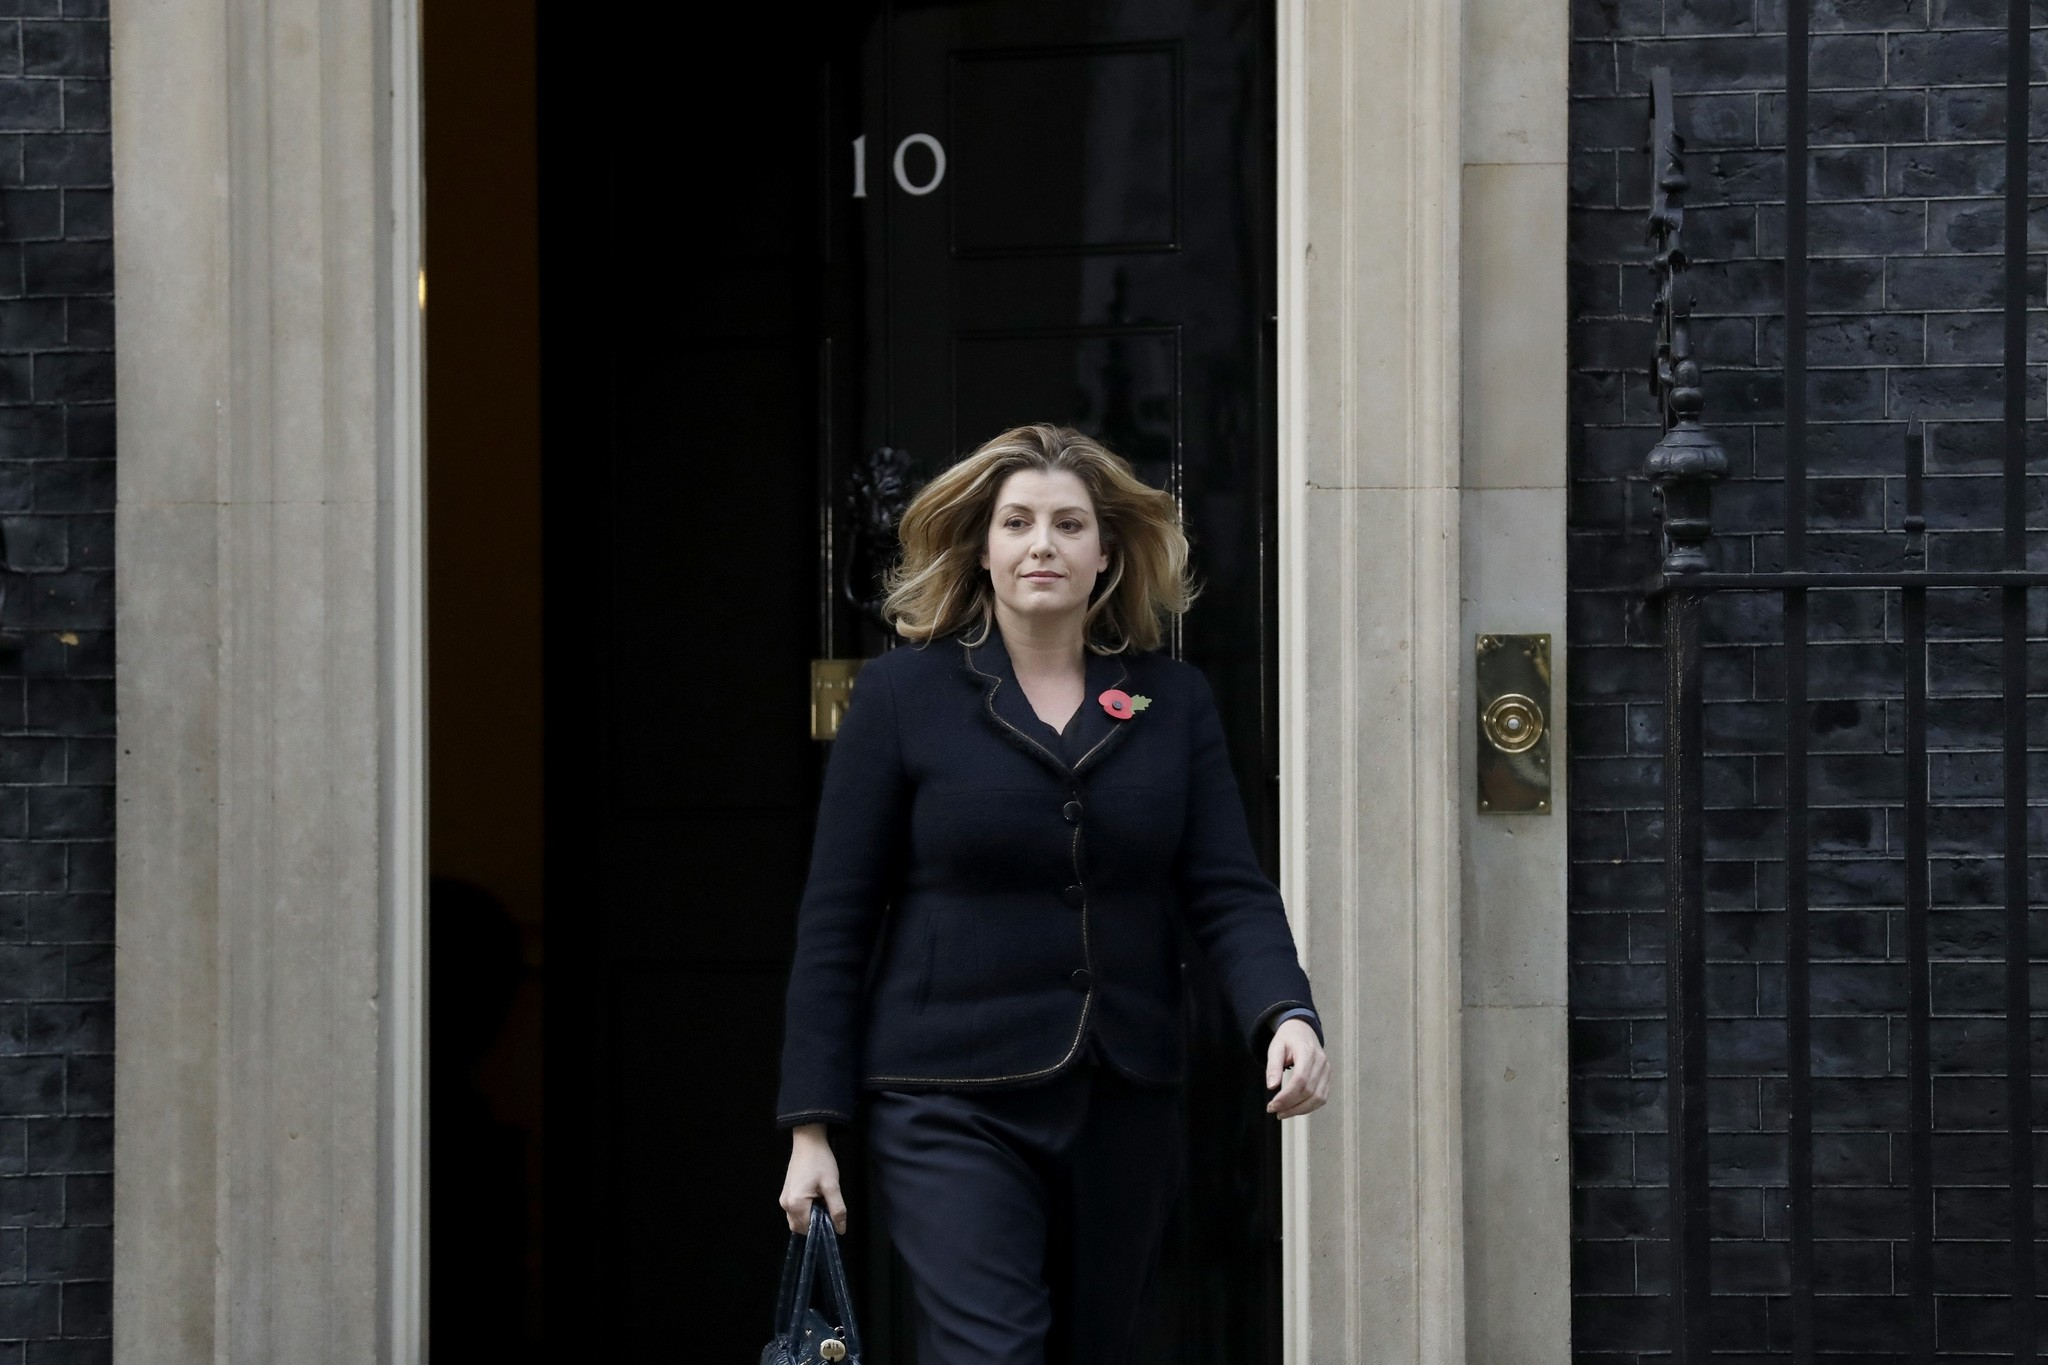 Britain's newly appointed Secretary of State for International Development Penny Mordaunt leaves 10 Downing Street in London, Thursday, Nov. 9, 2017. (AP Photo)